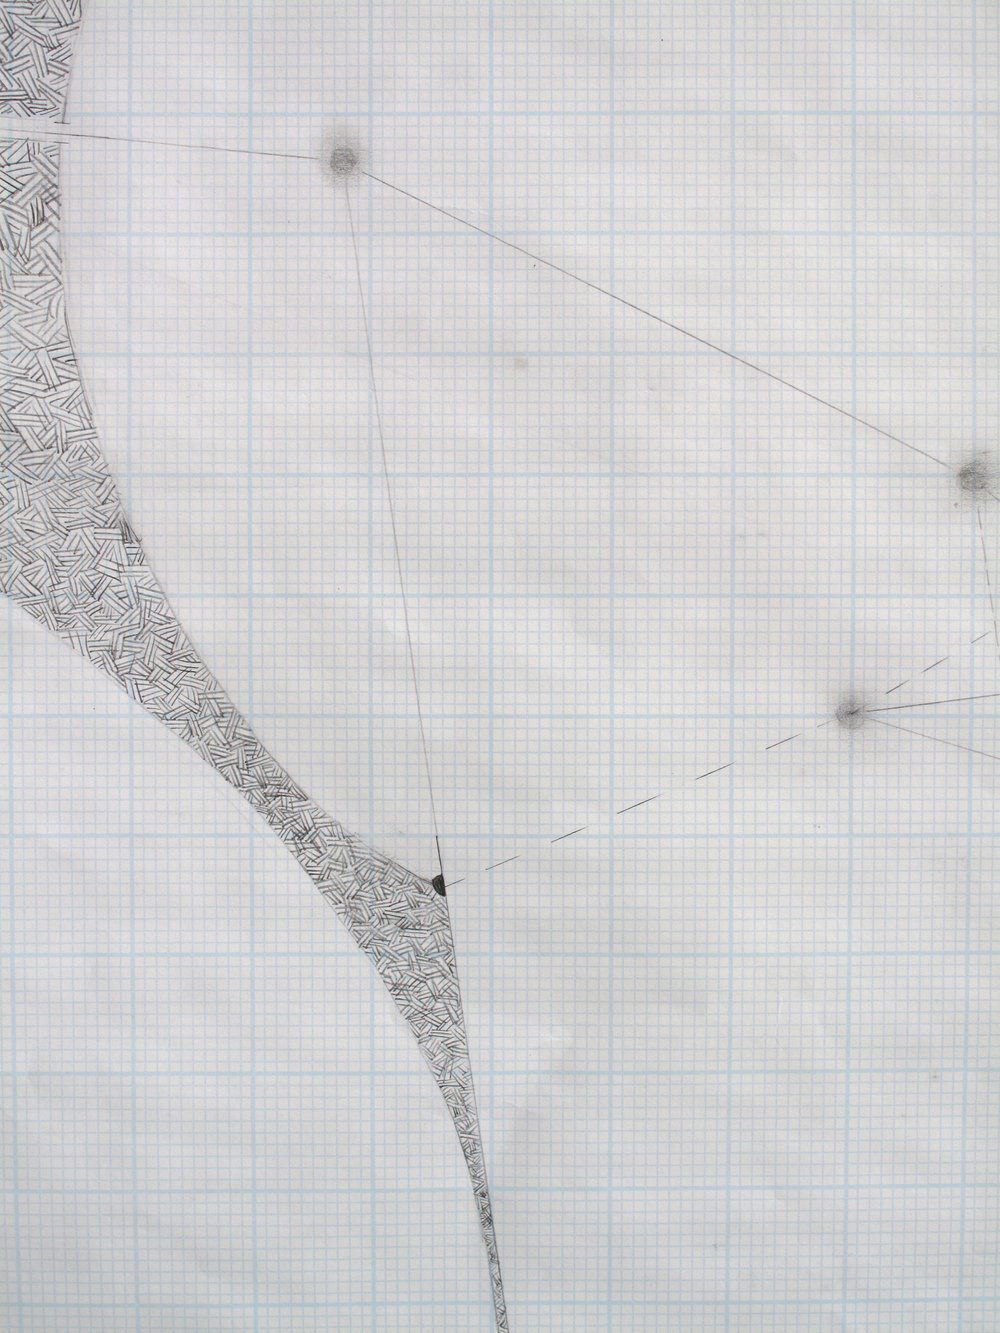 "Studies in Space, Detail    Graphite on Graph Paper; 17"" x 22"" (from series of 4)"